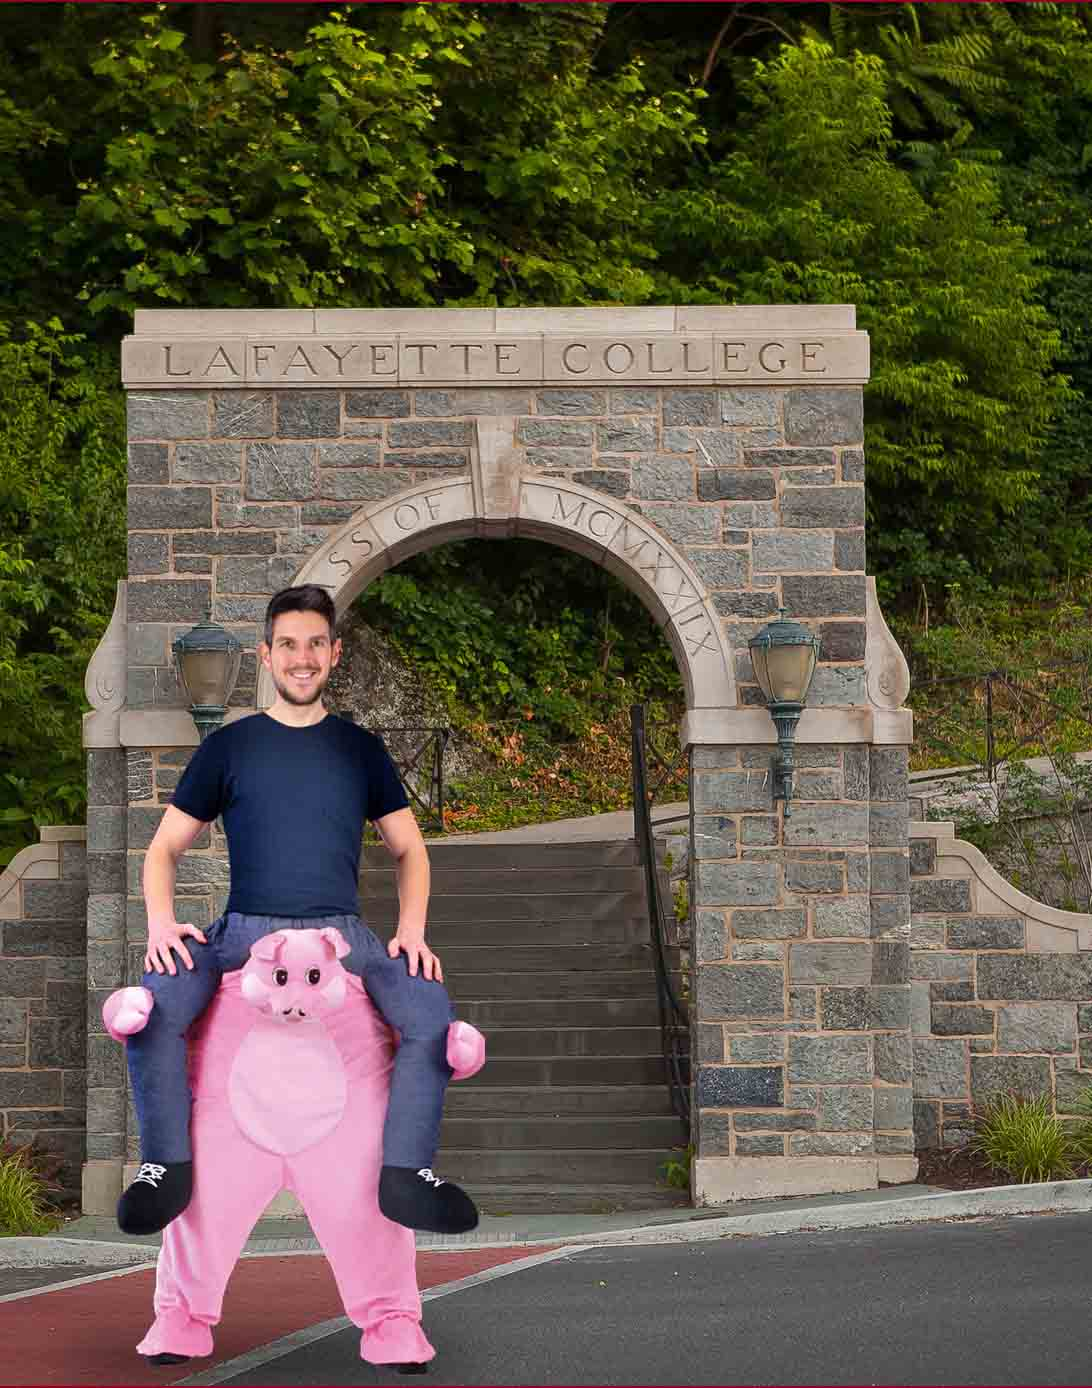 Somone in a pig costume gives a student a piggyback ride.